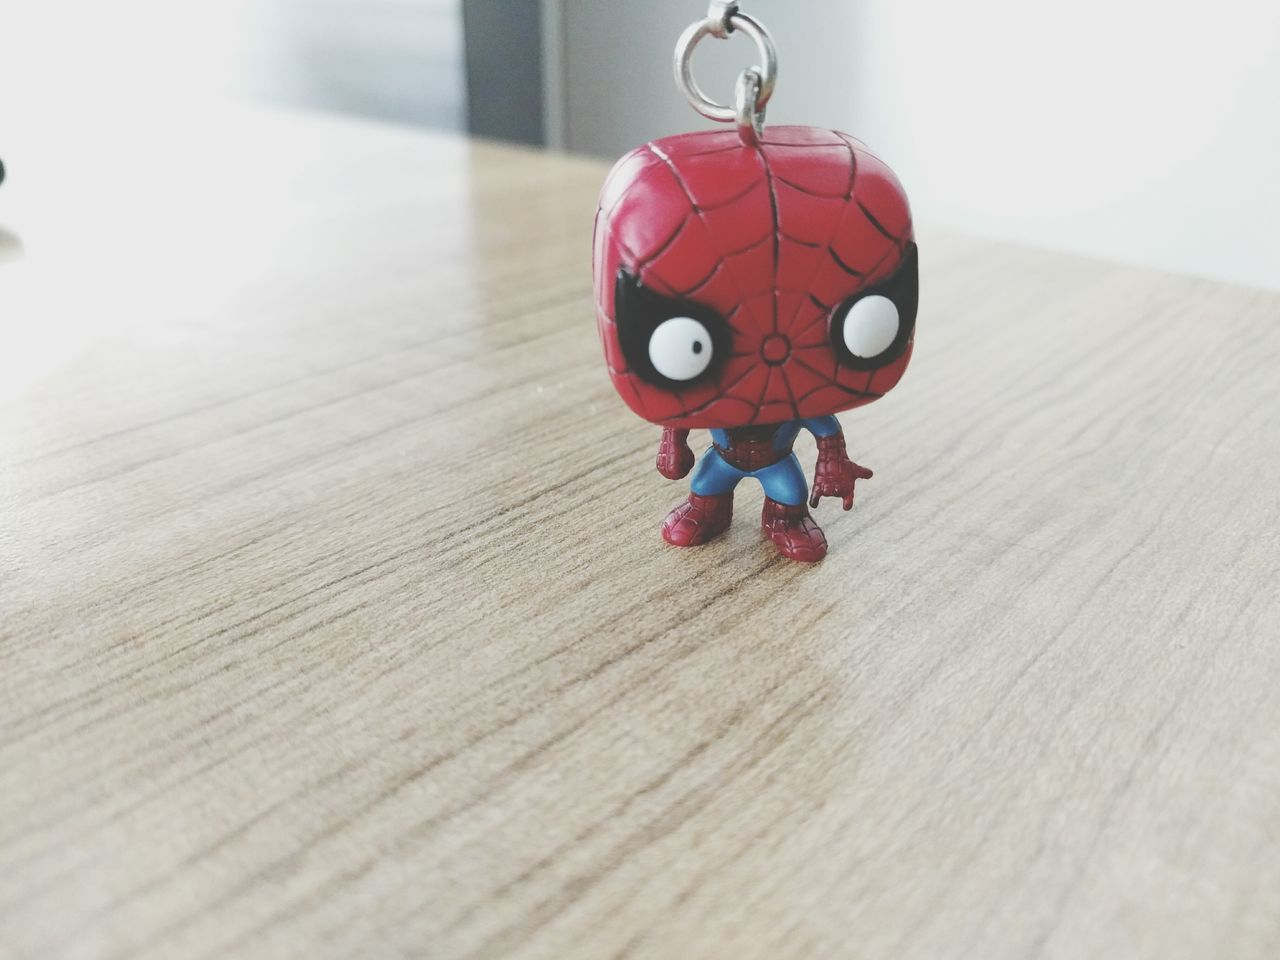 Director Spidey fury! Nexus6pphotography Spiderman Spider Webs Keychains  Wood Table Marvellegends Bobblehead Funny Pics Amazing Day